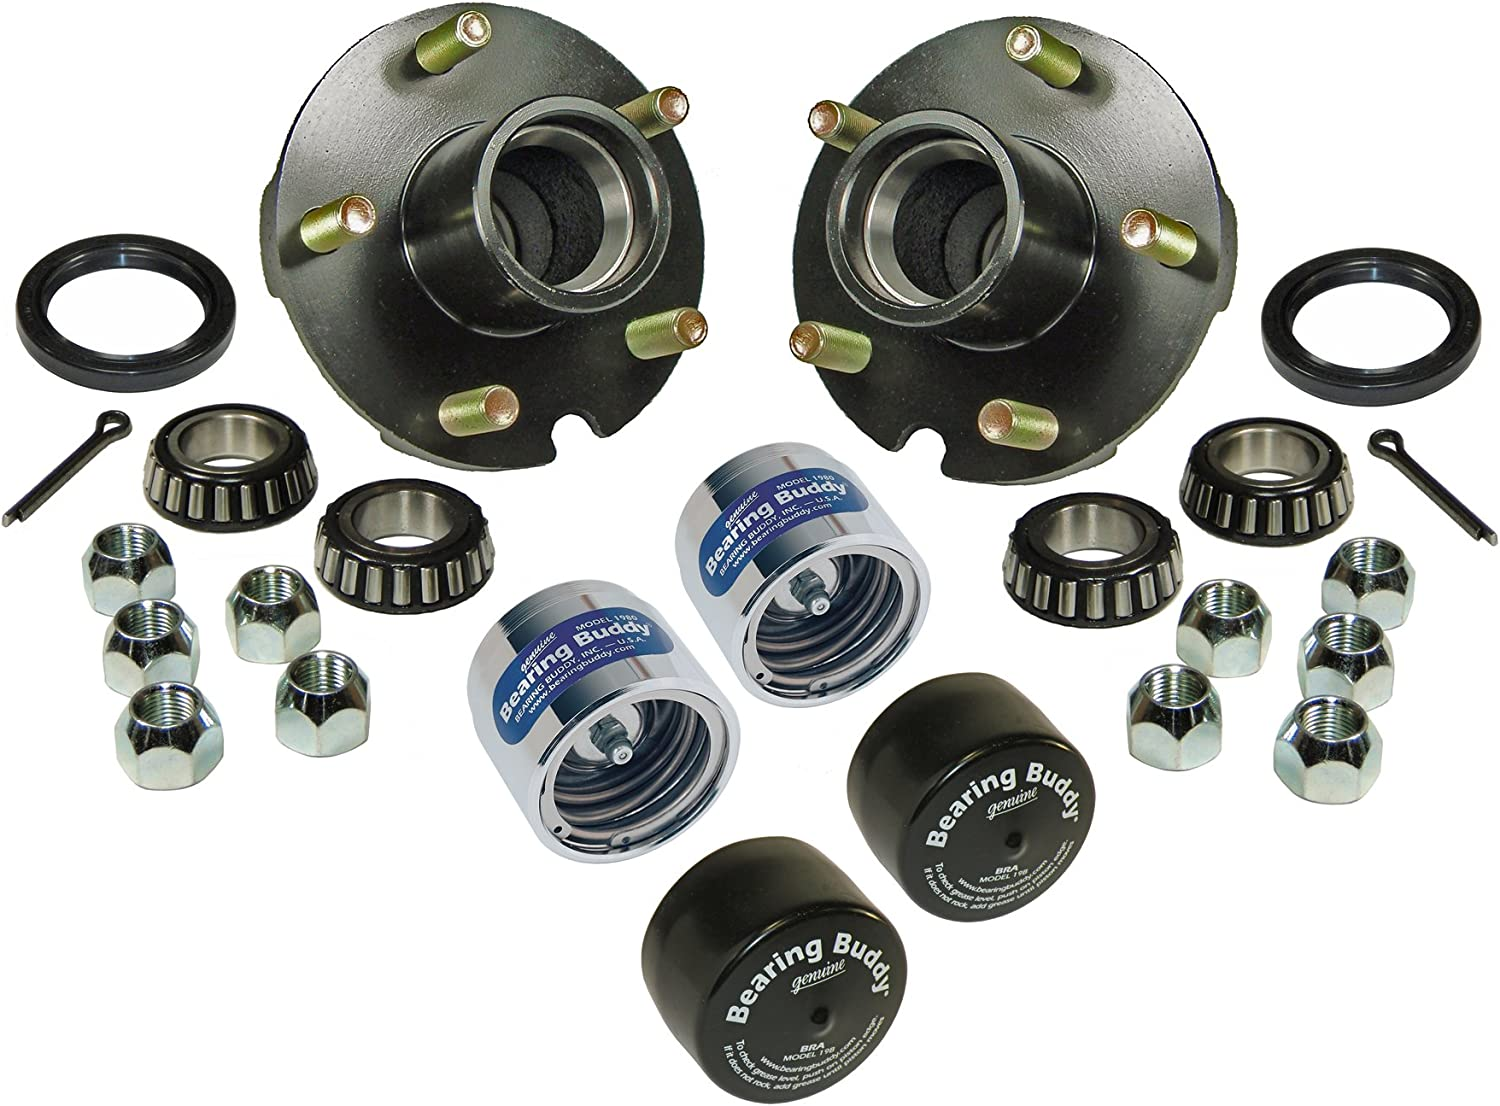 Rigid Hitch Trailer Hub Assembly (BT-150-22-A-BBC) - 1-1/16 inch I.D. Bearings - with Chrome Bearing Buddies & Bras